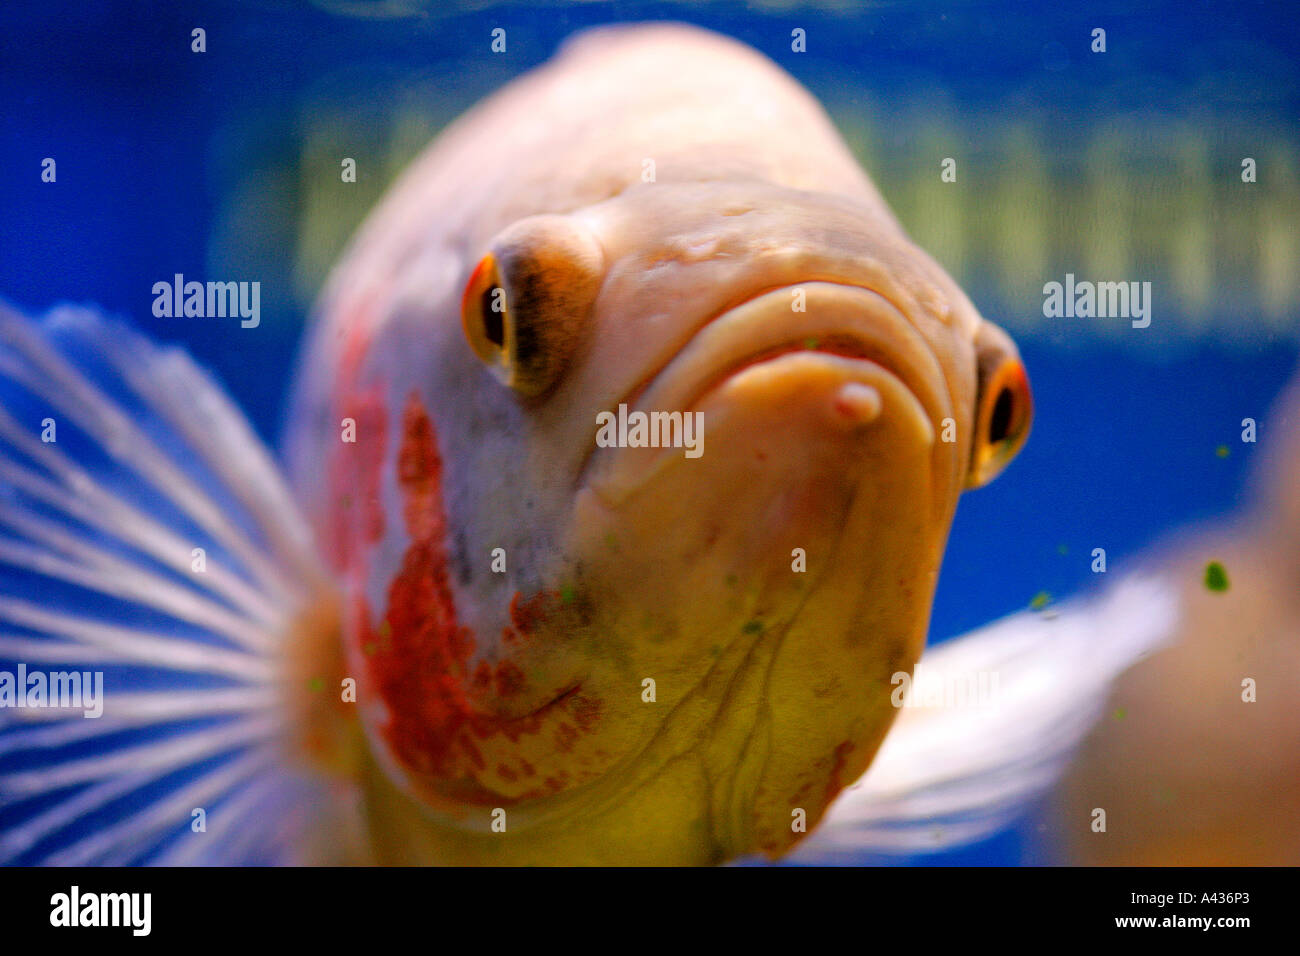 Fish in tank with goldfish - Stock Photo Fish Aquarium Tank Animal Fishes Freshwater Aquaria Tropical Goldfish Fancy Red Blue Yellow Lilac Colour Color Genetic Diversity